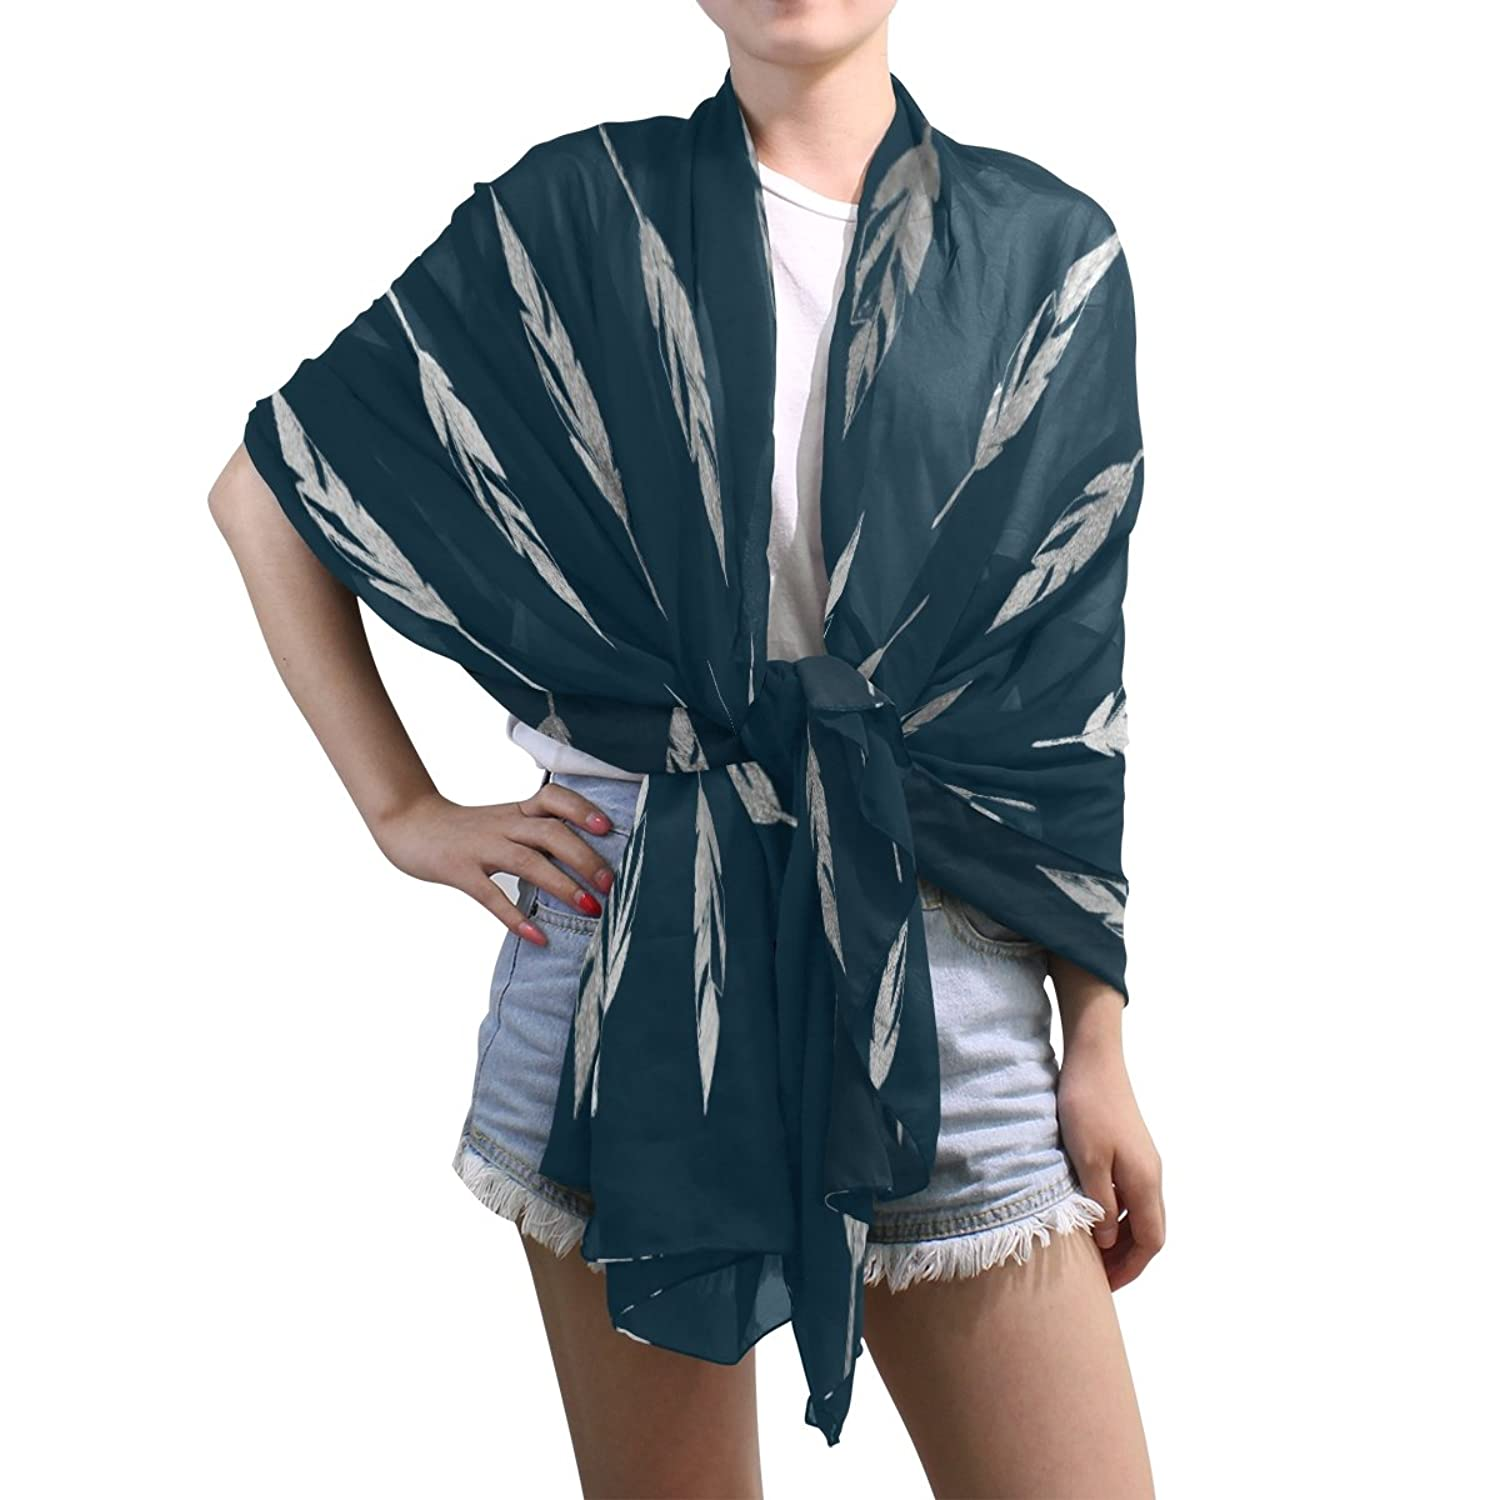 Lightweight Shawl Wrap Sheer Scarves,Christmas Leaves,Oblong Chiffon Scarf